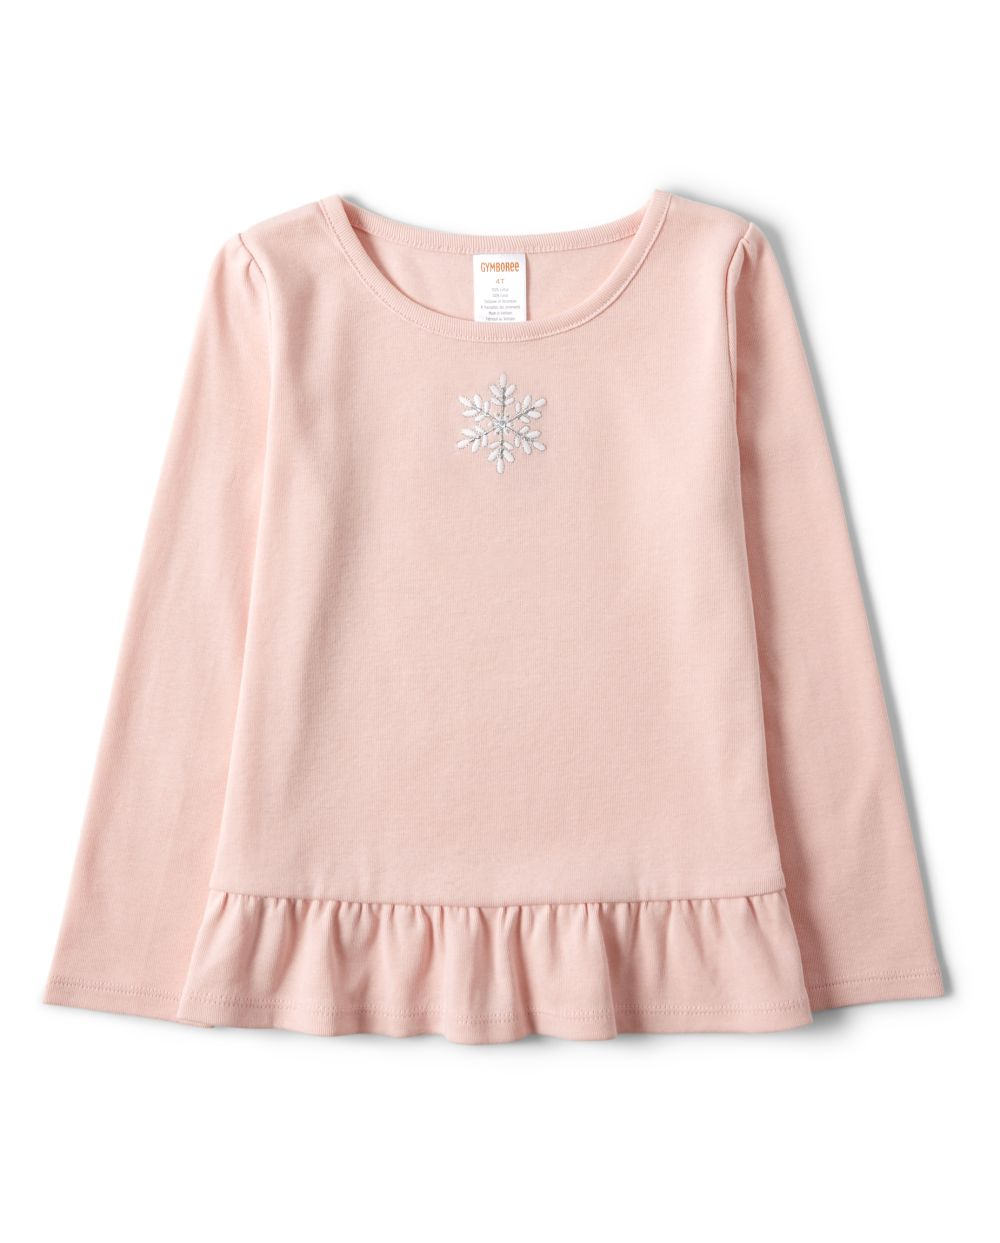 Girls Embroidered Snowflake Peplum Top - Every Day Play